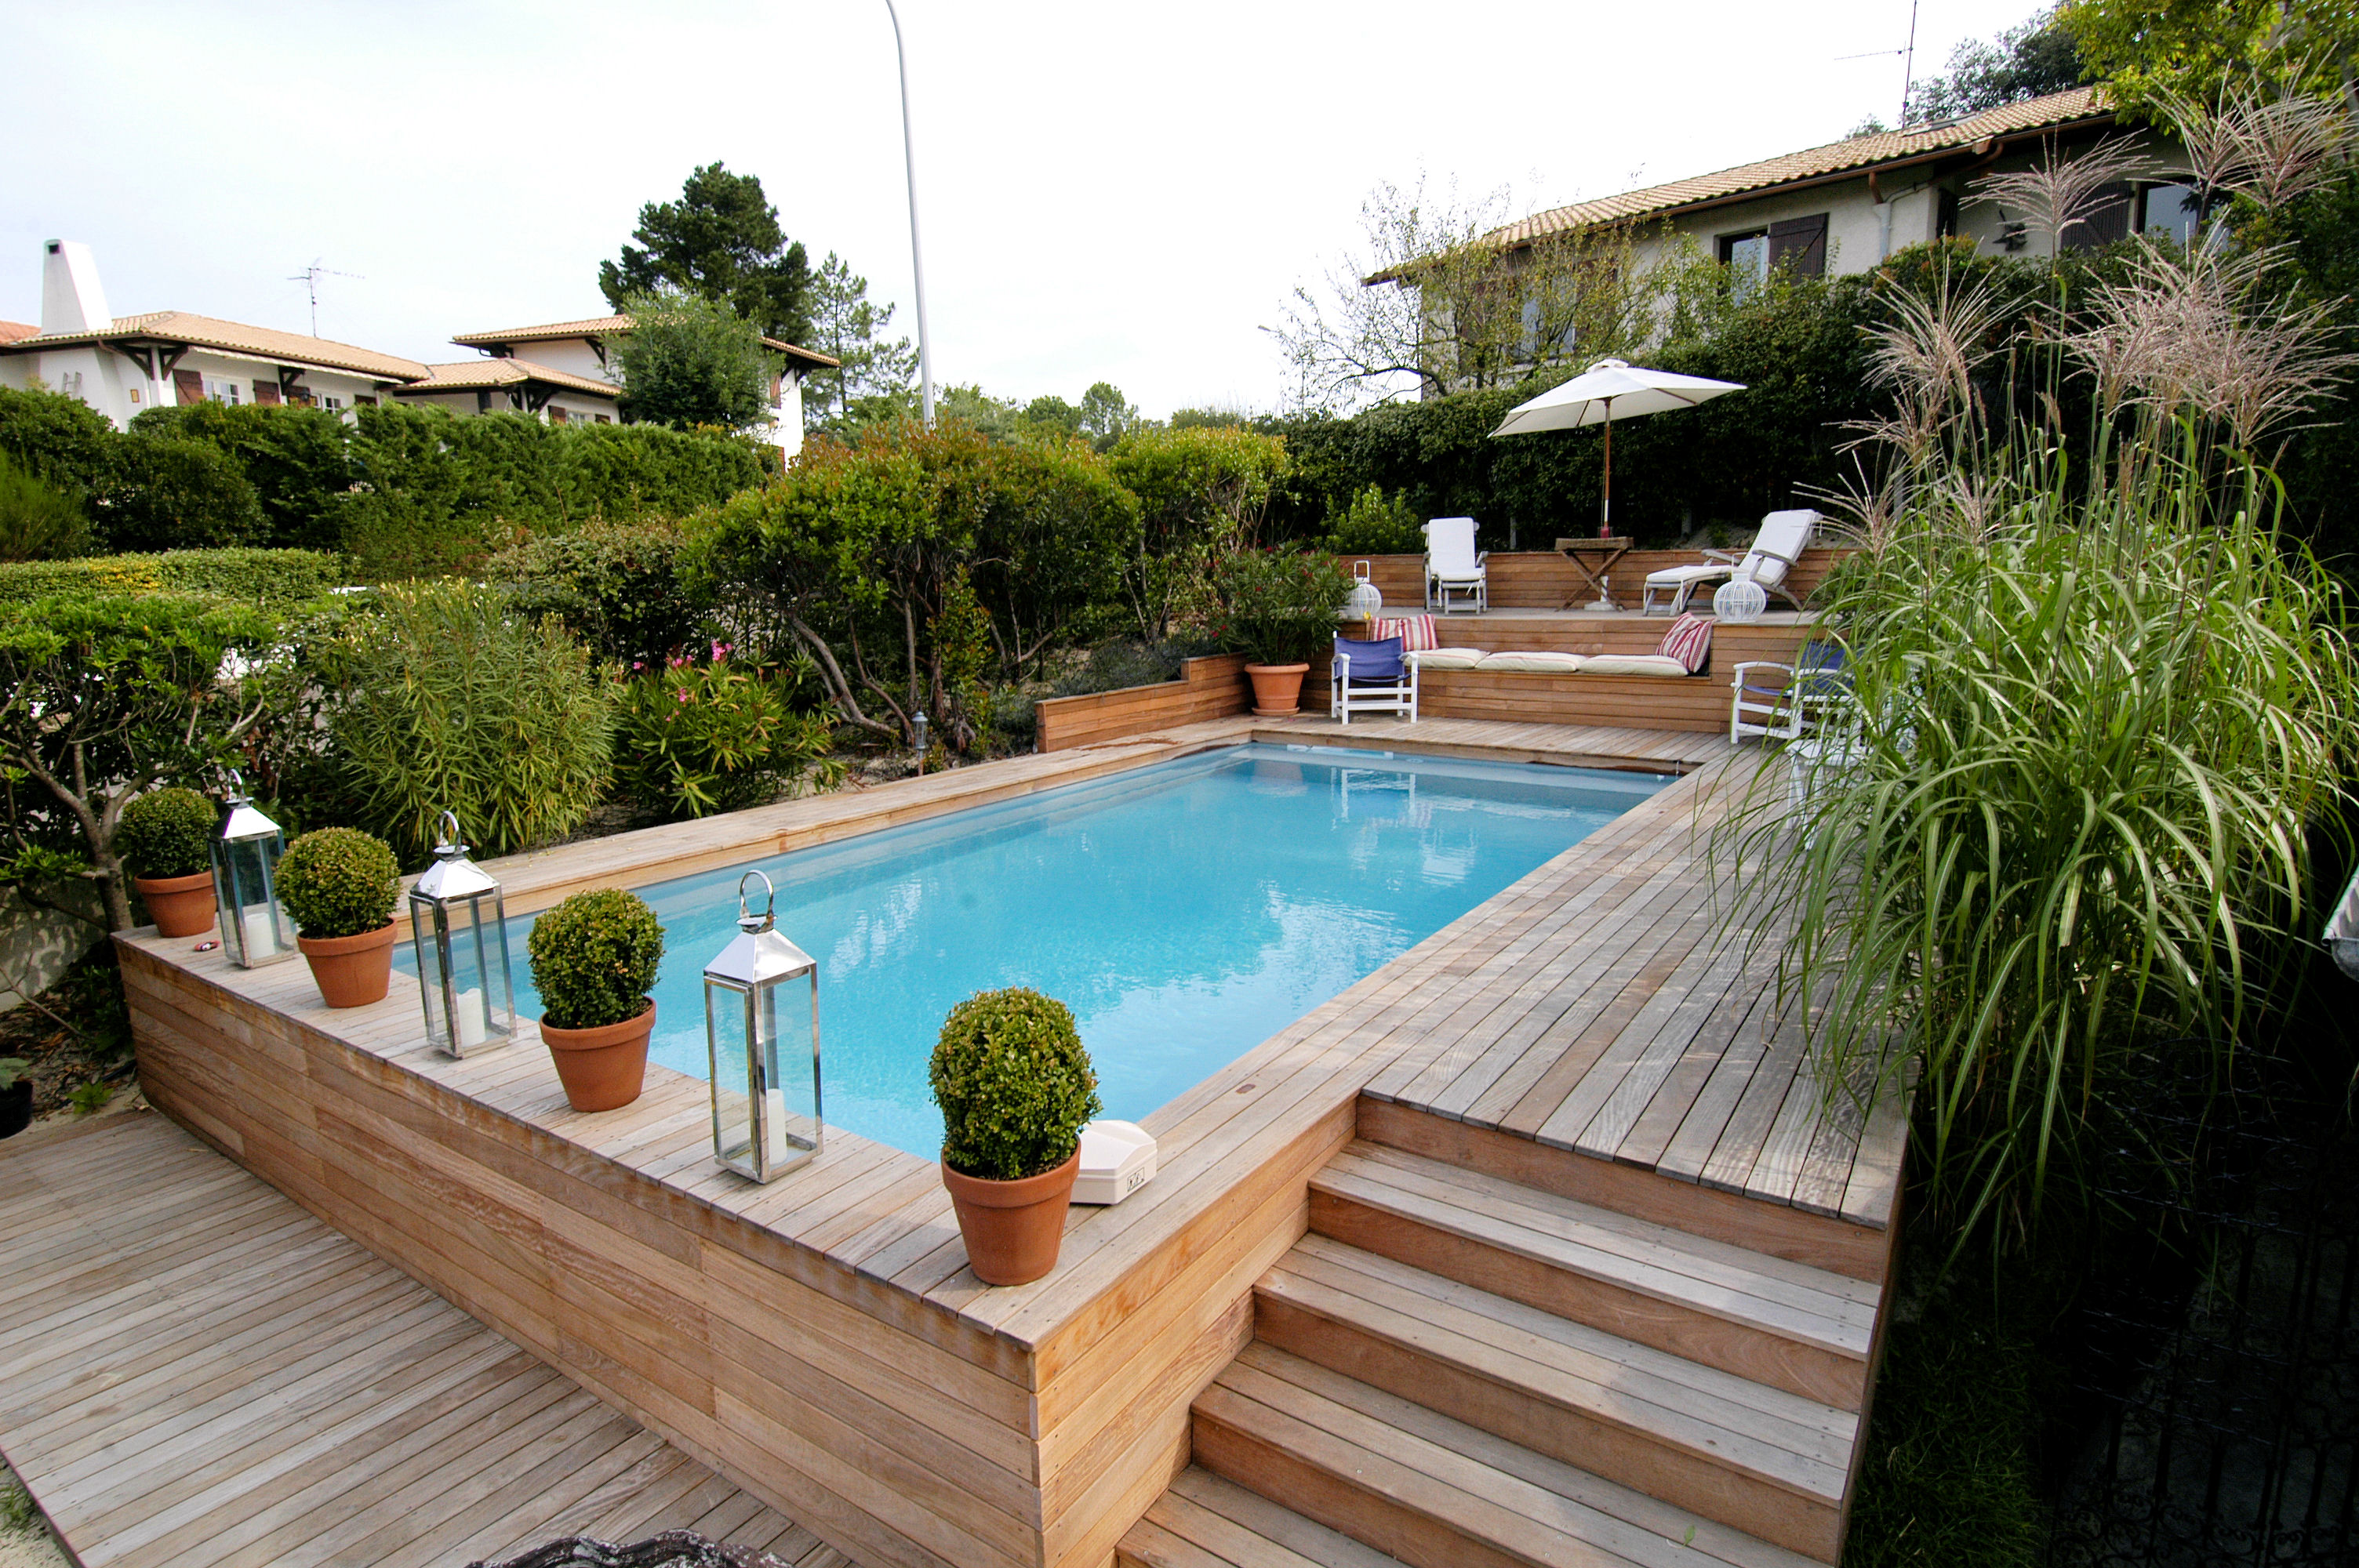 Piscine bois semi enterree for Piscine bois a enterrer